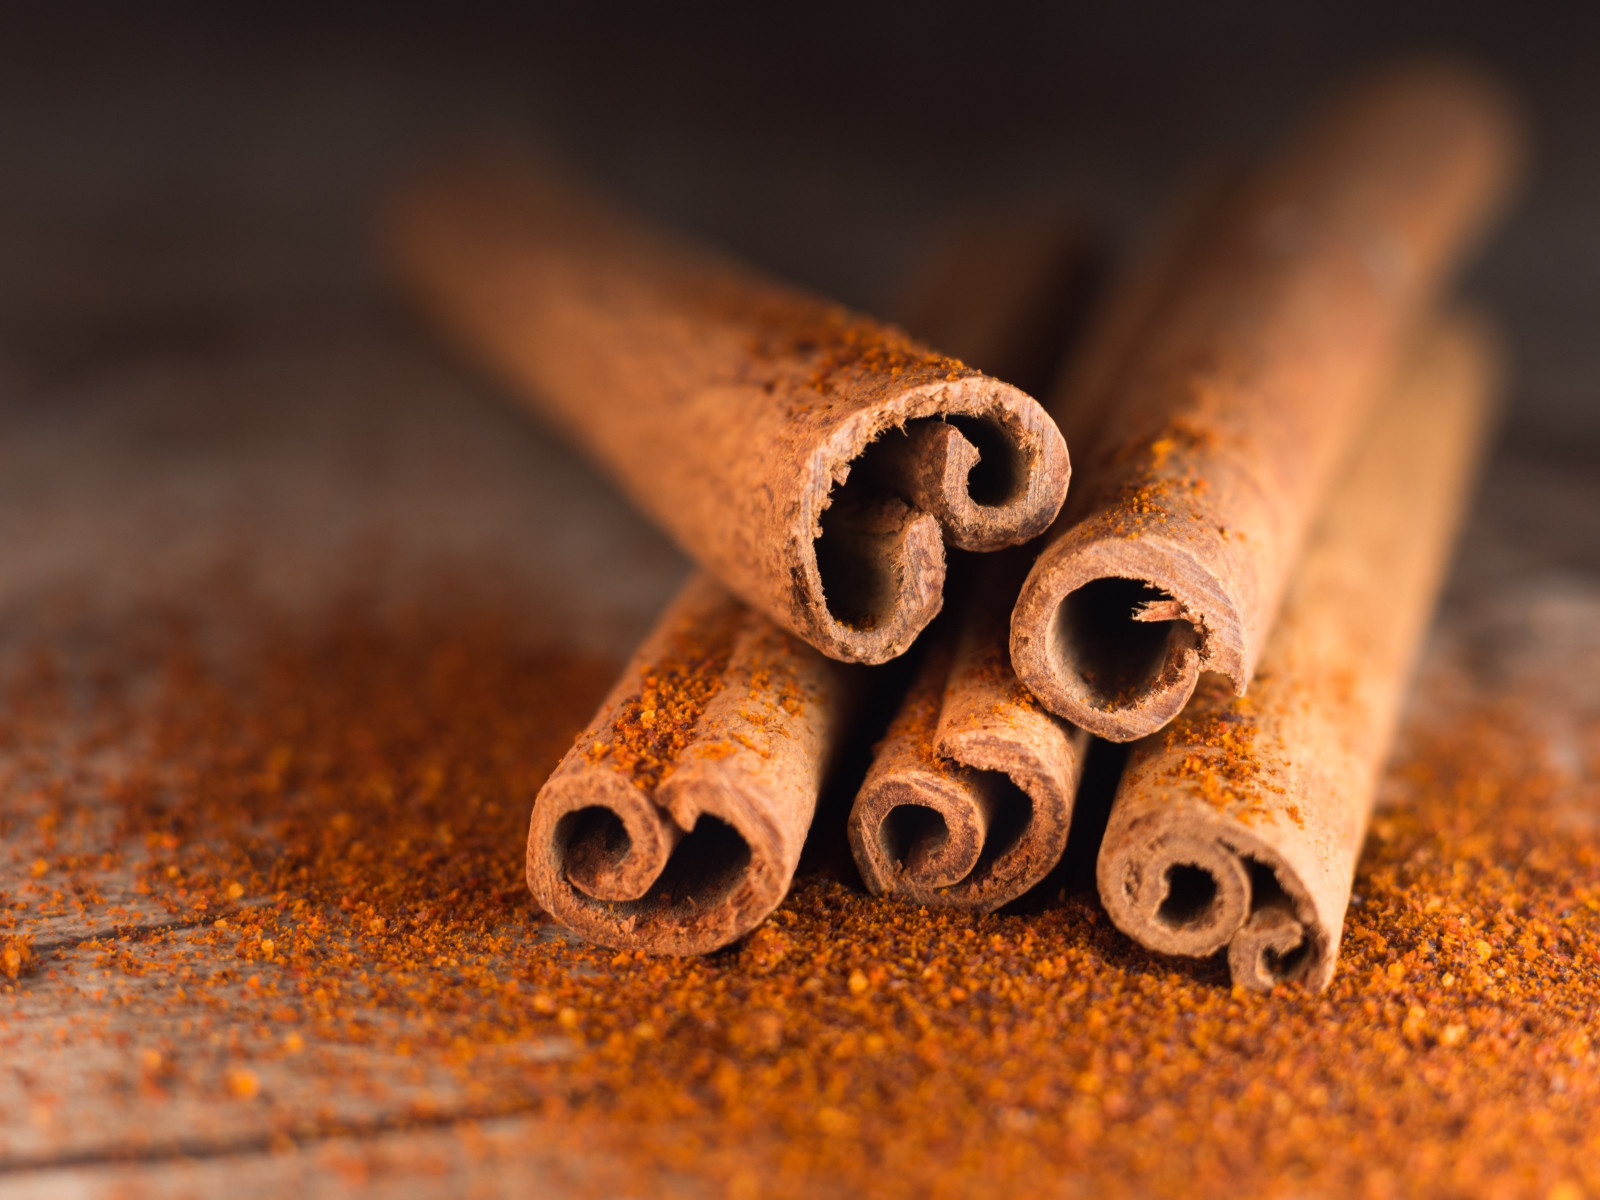 Cinnamon | 1600x1200 wallpaper